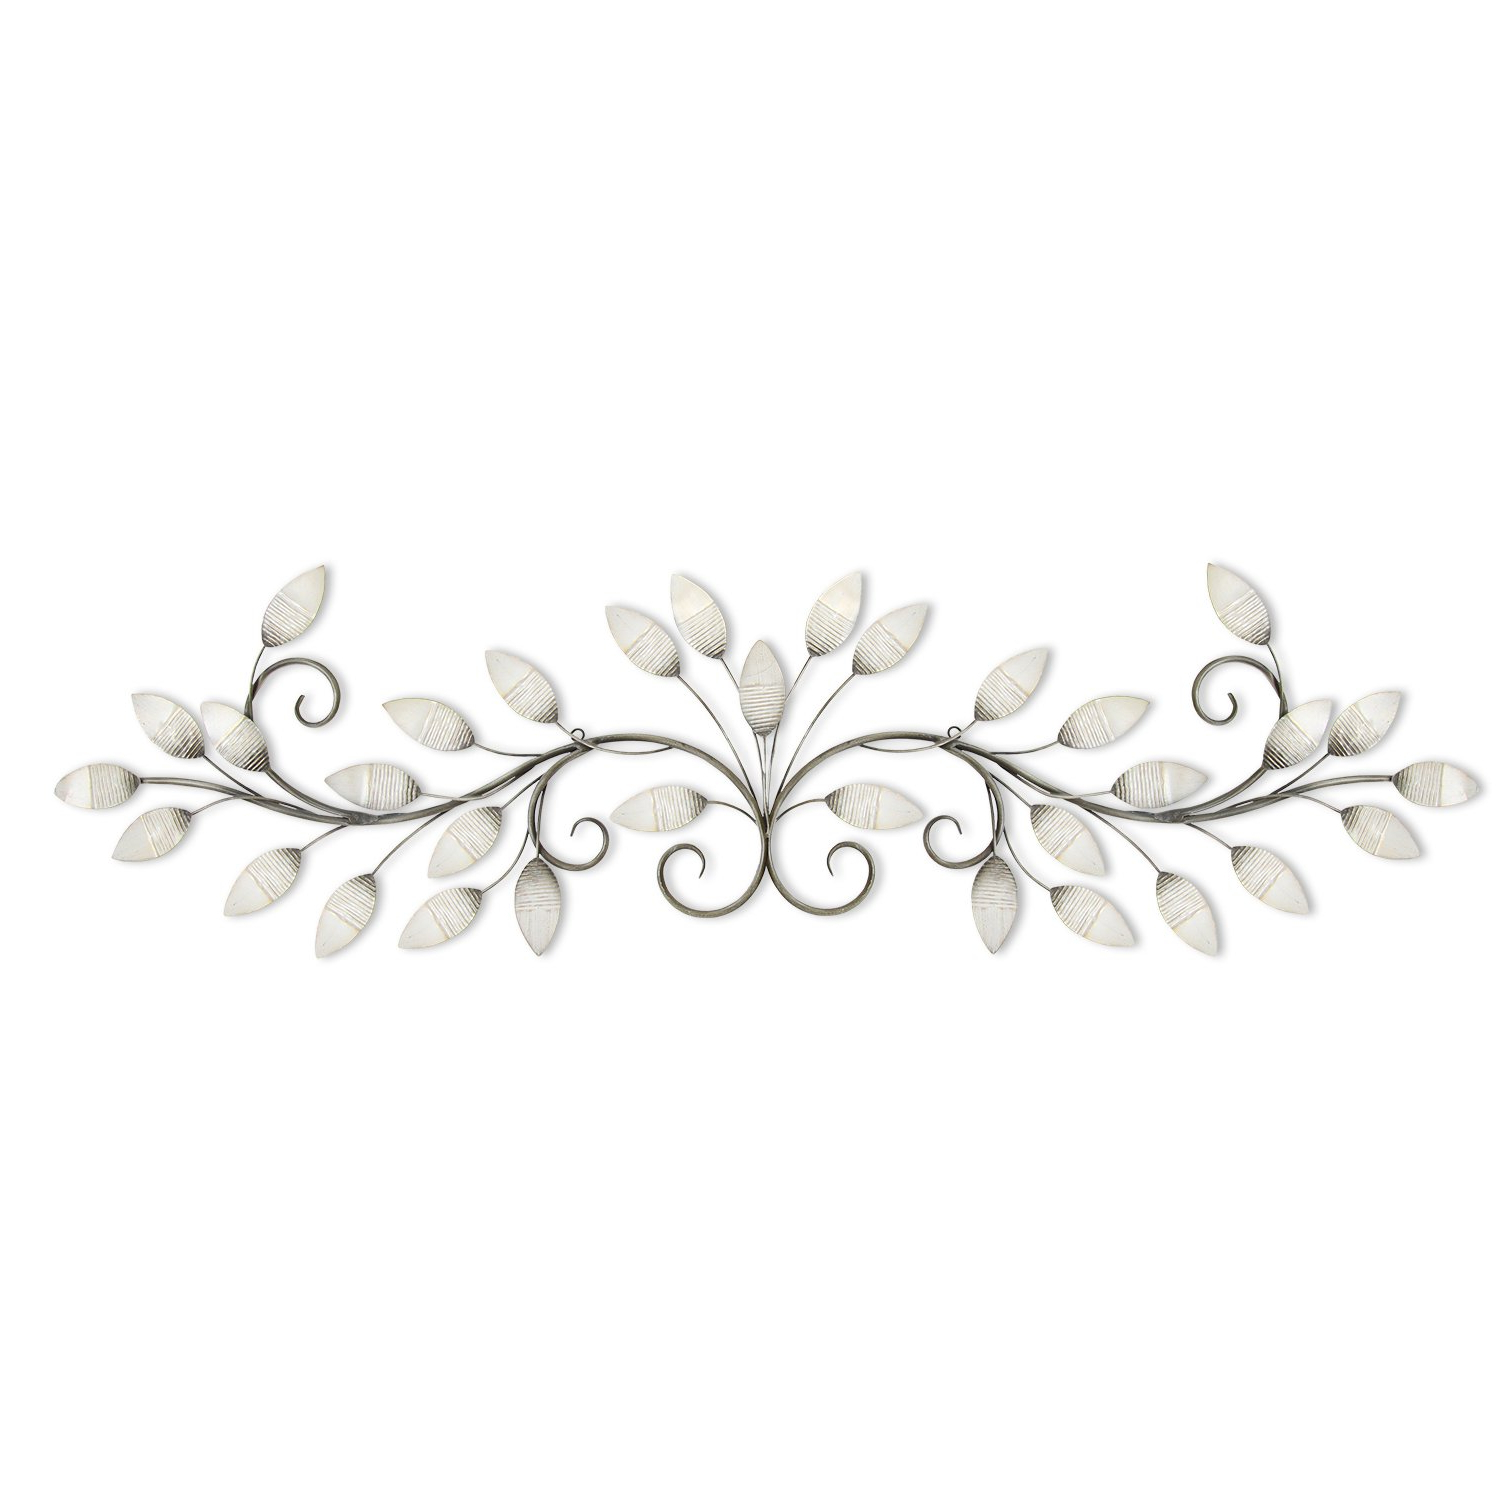 Brushed Pearl Over The Door Wall Decor Regarding Fashionable Amazon: Stratton Home Decor S07736 Brushed Pearl Over The Door (Gallery 1 of 20)